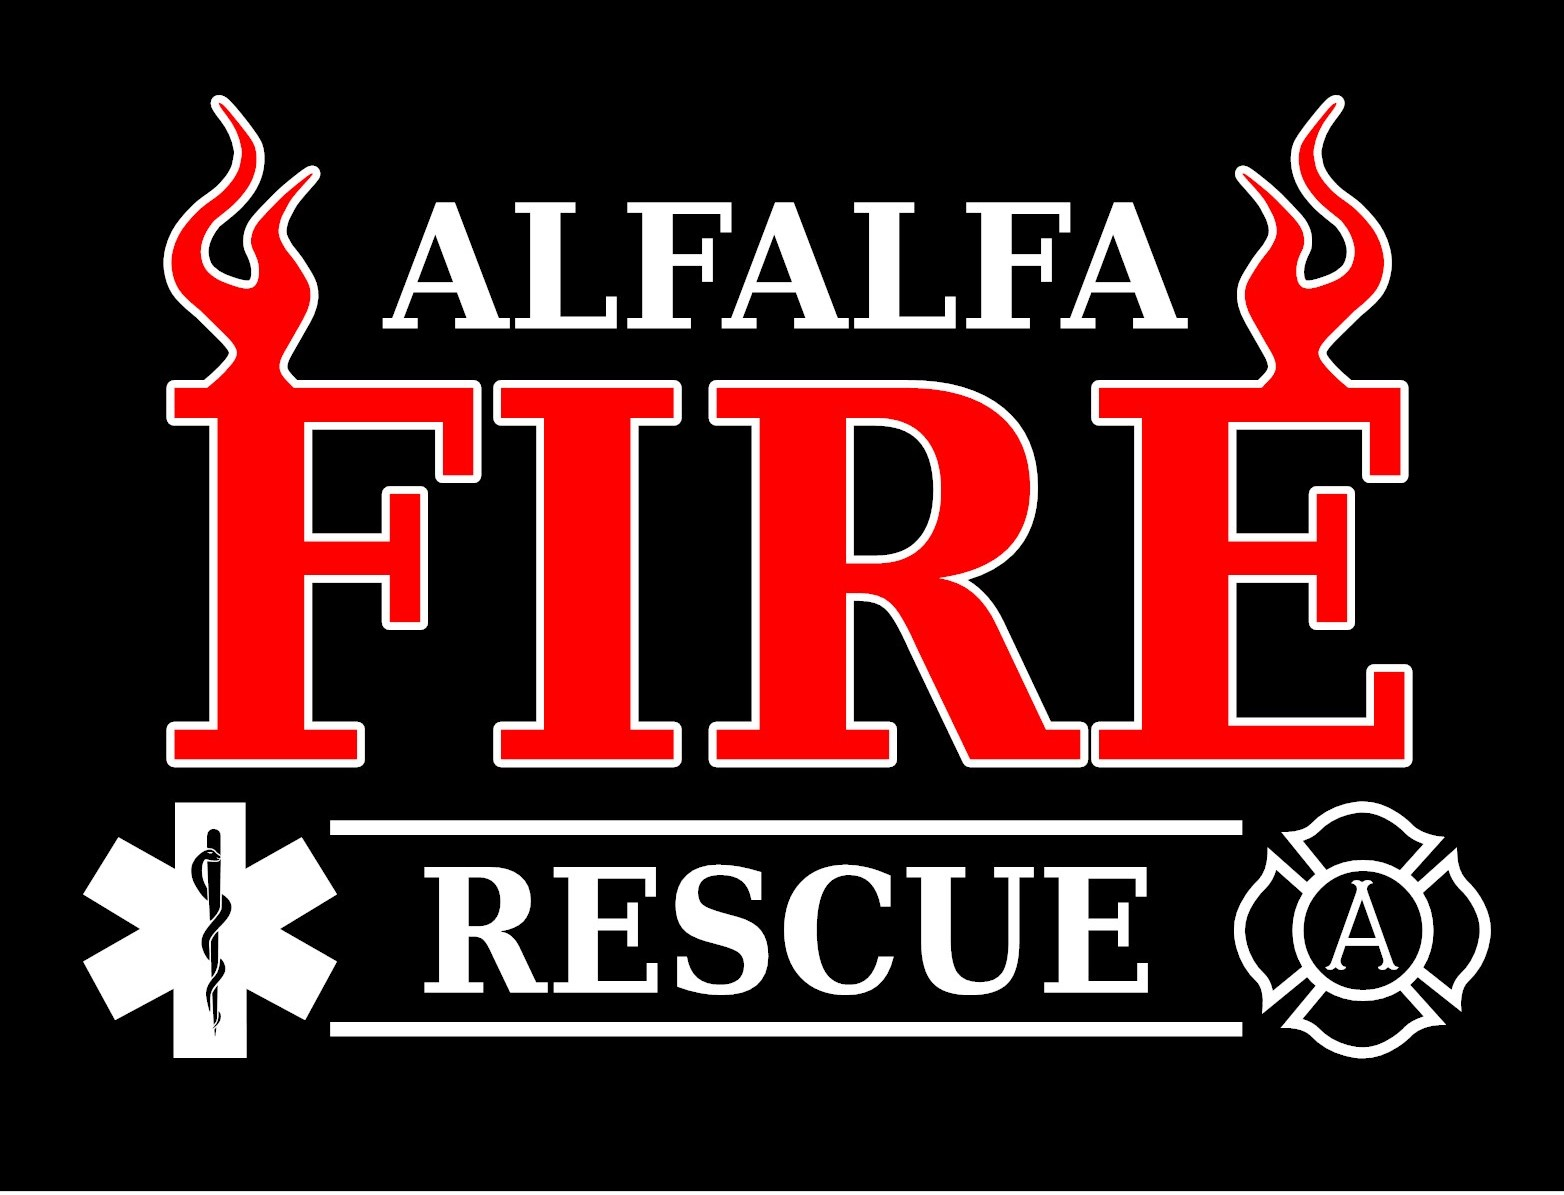 Alfalfa Fire District